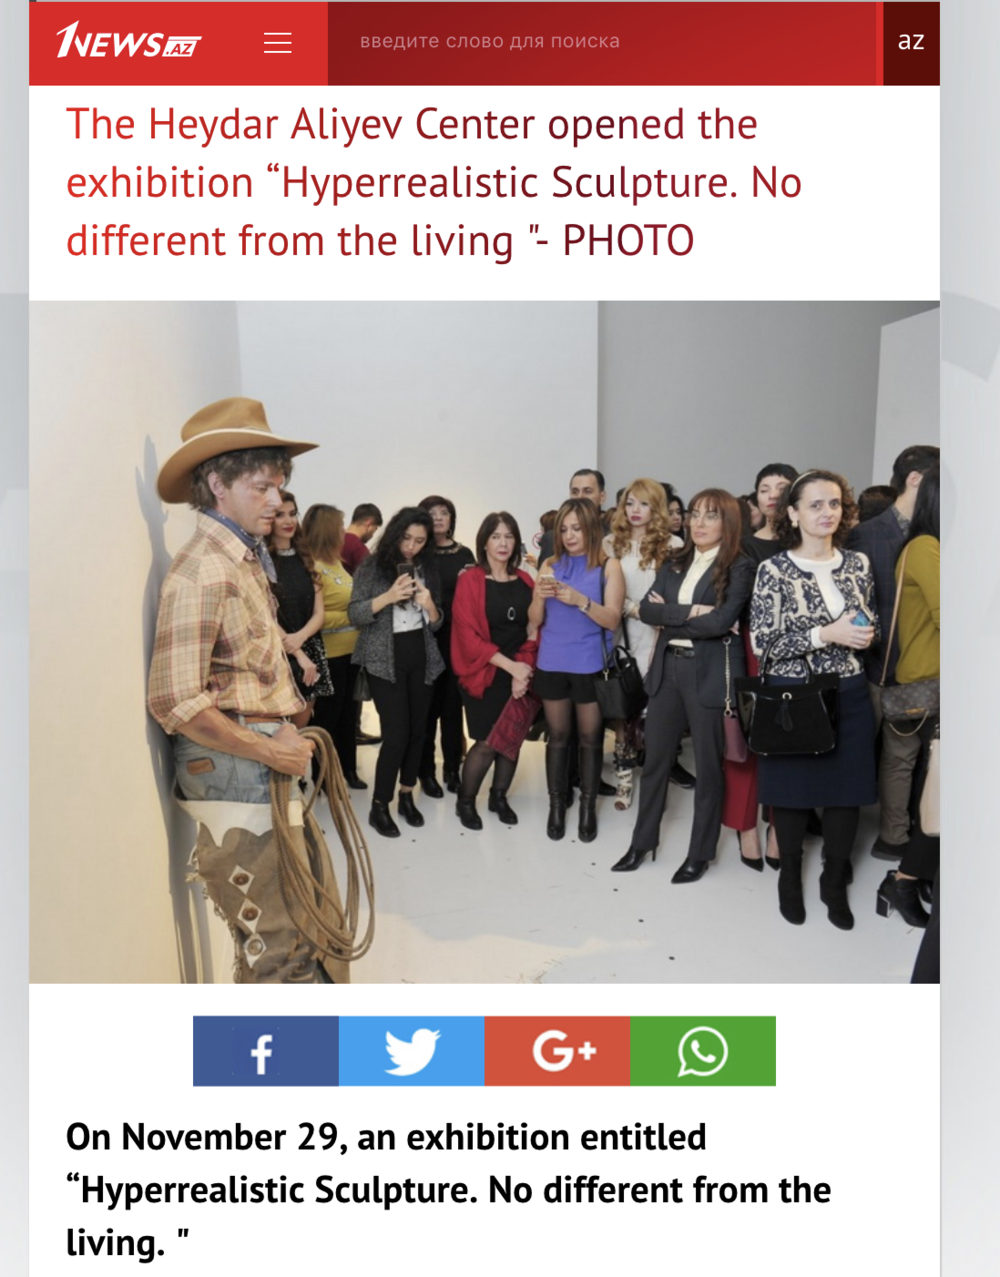 """The Heydar Aliyev Center opened the exhibition """"Hyperrealistic Sculpture. No different from the living """""""